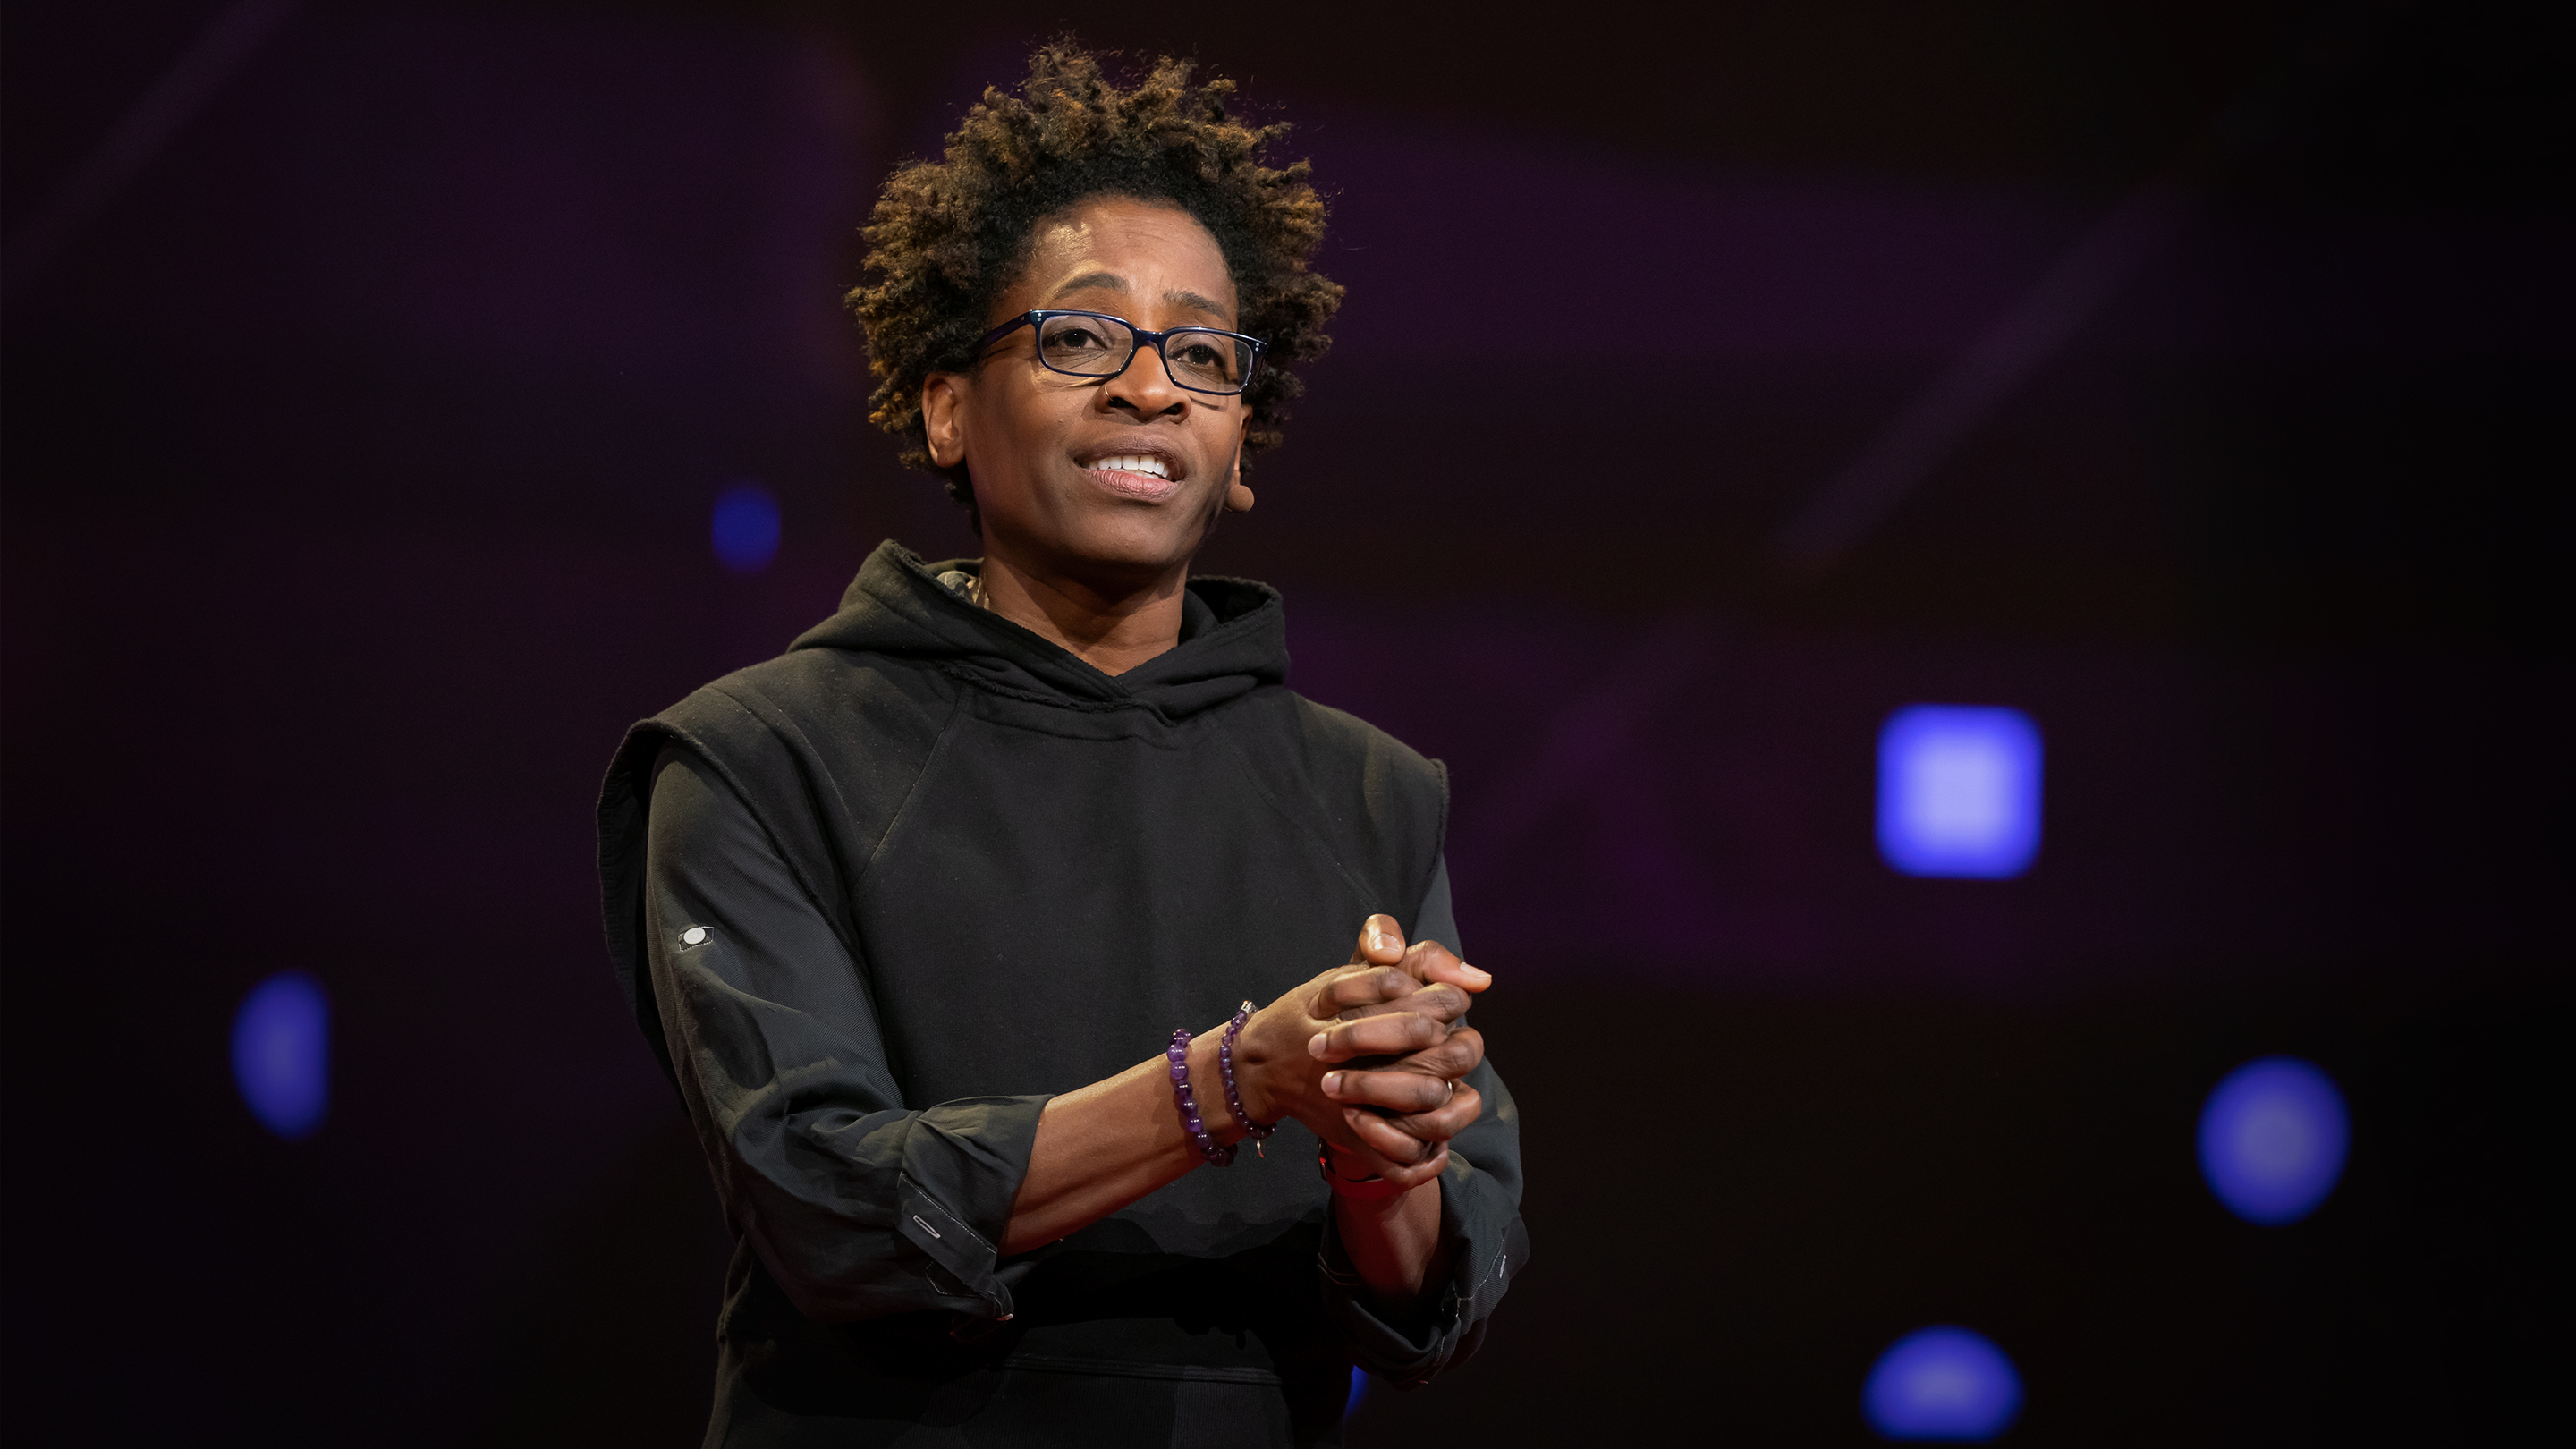 Lori Gottlieb How Changing Your Story Can Change Your Life Ted Talk